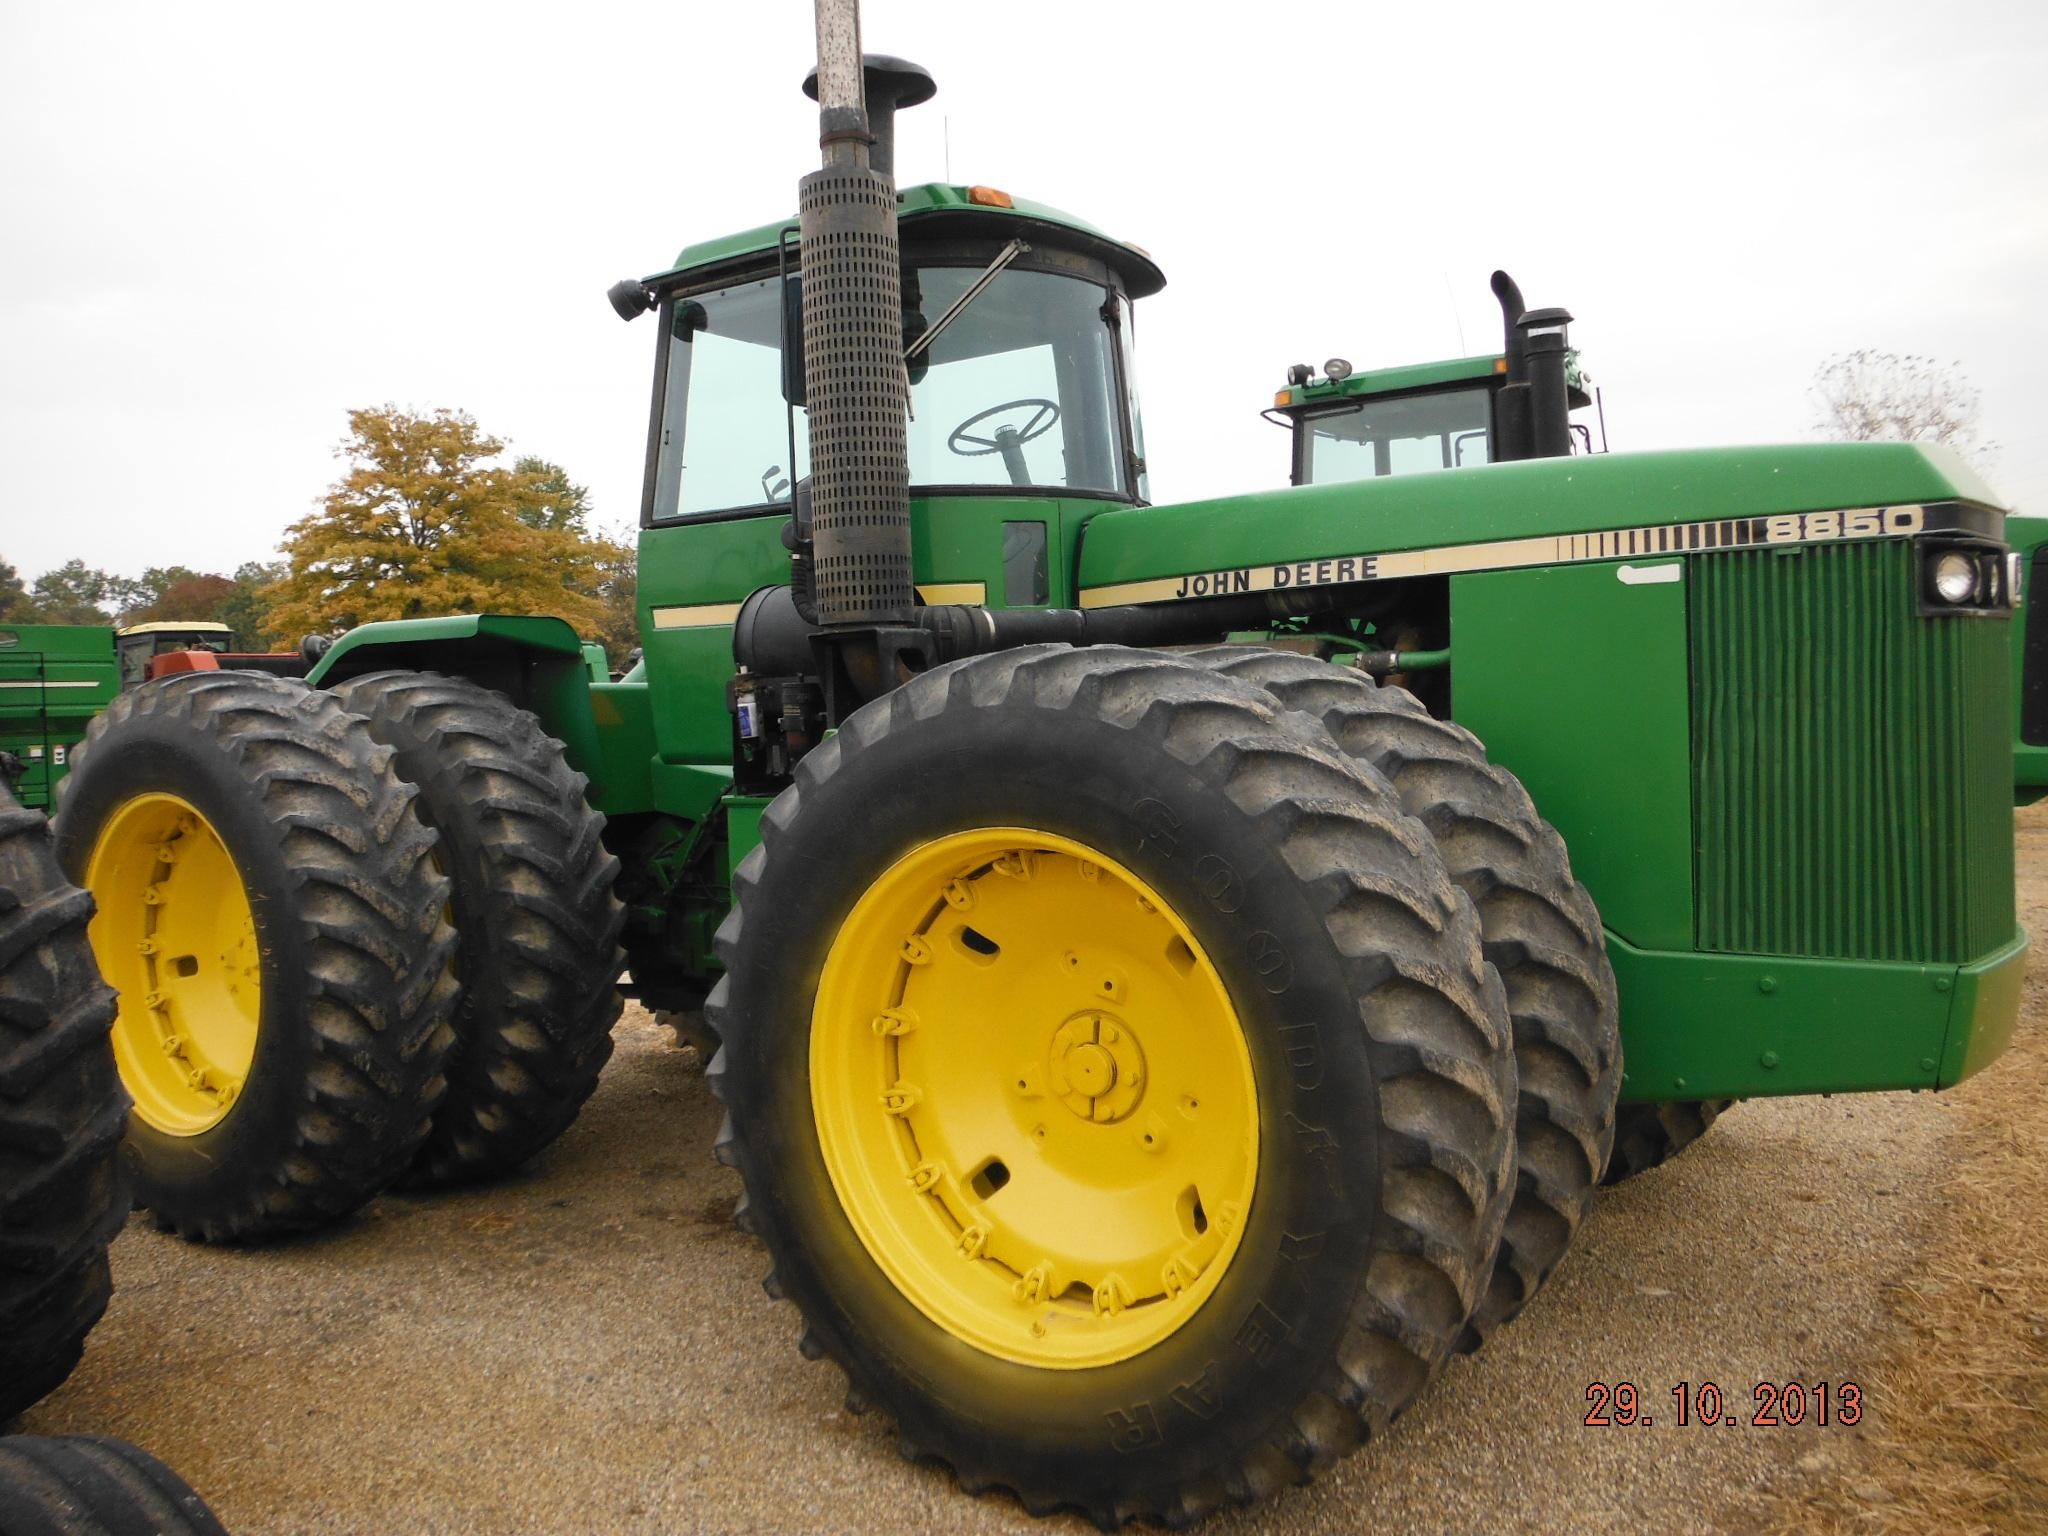 Wisconsin Ag Connection - JOHN DEERE 8850 Tractors for sale